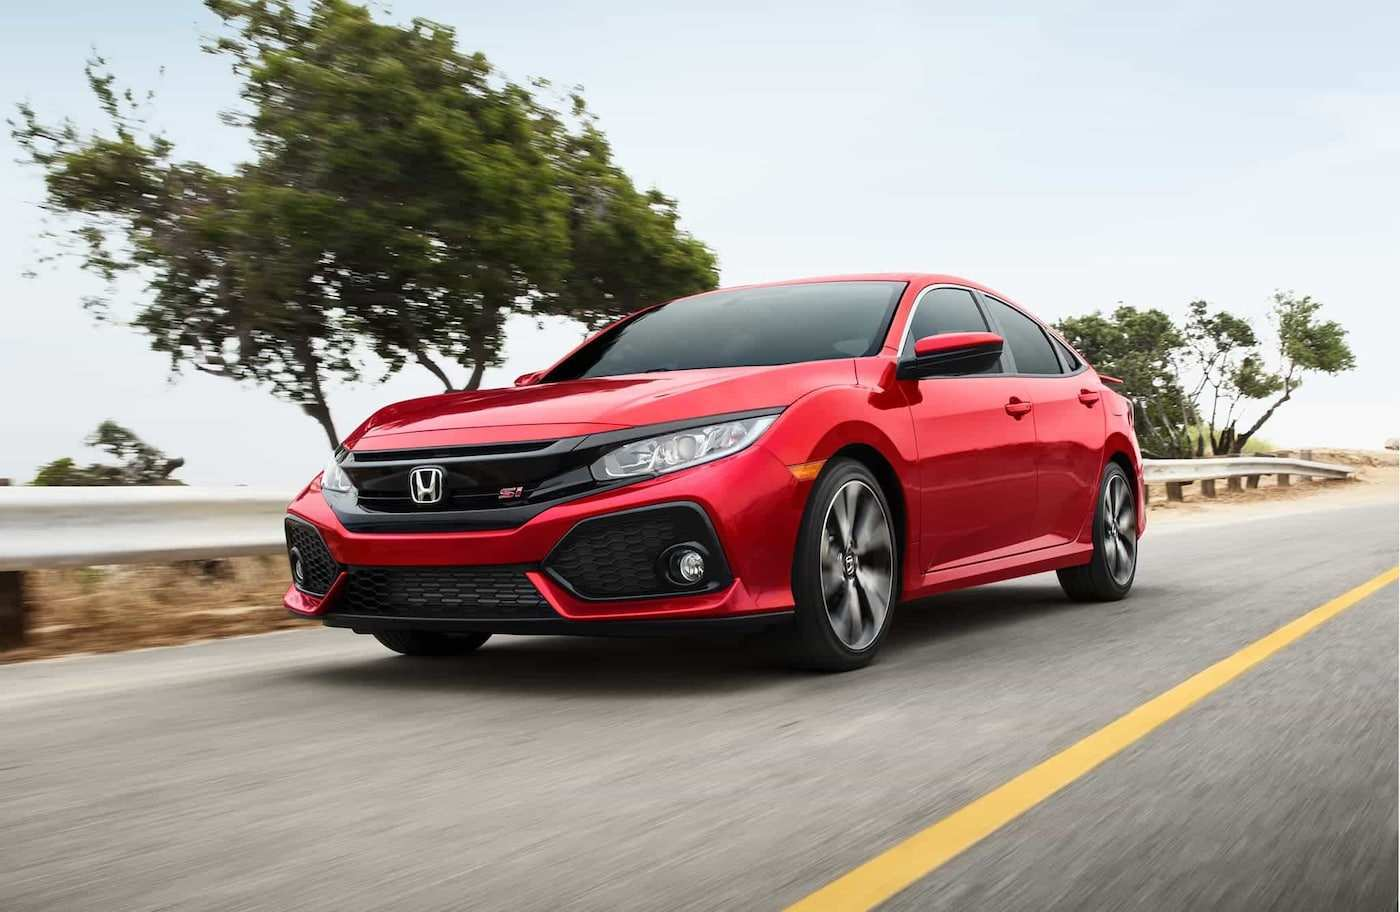 49 All New 2019 Honda Civic Si Wallpaper